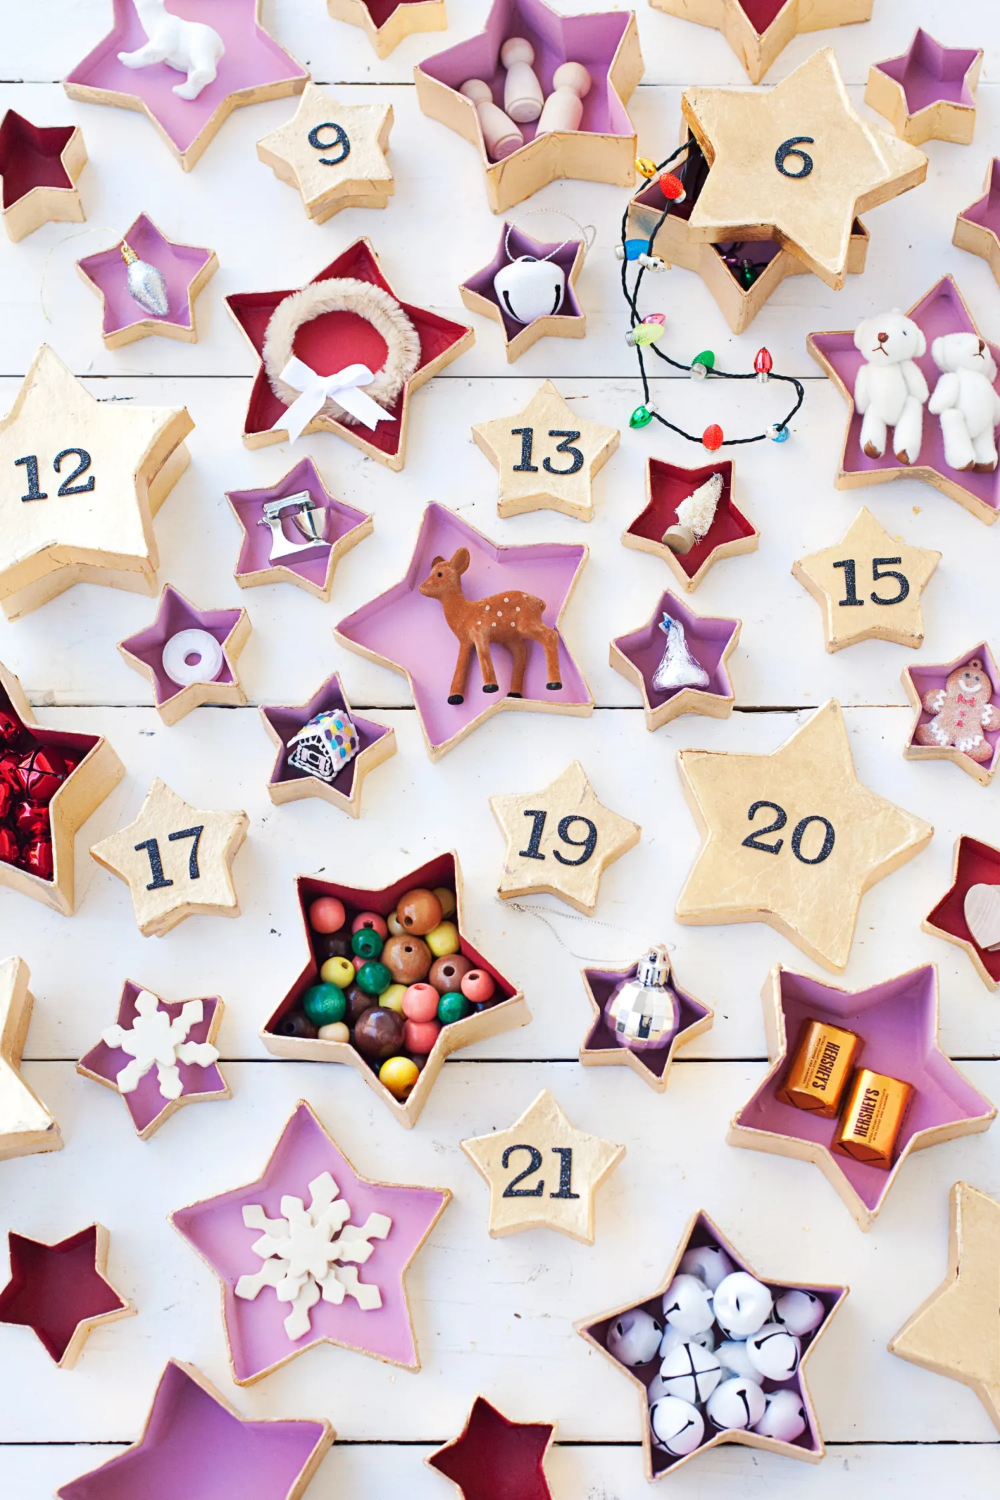 35 DIY Advent Calendars to Make Now So Youre Ready for December